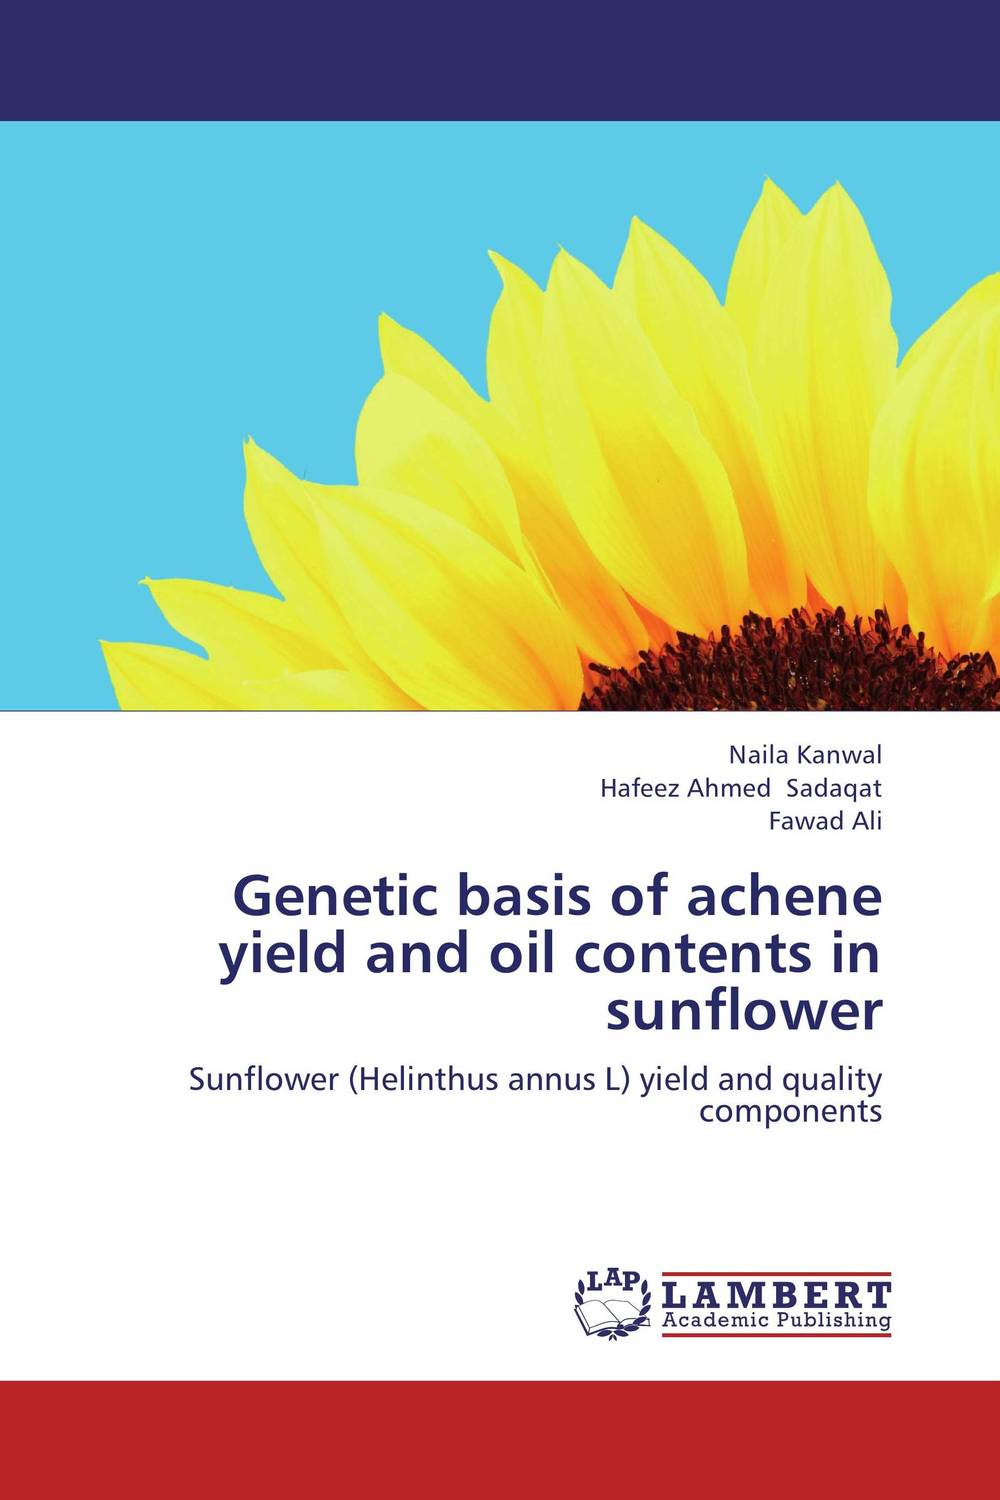 цена на Genetic basis of achene yield and oil contents in sunflower